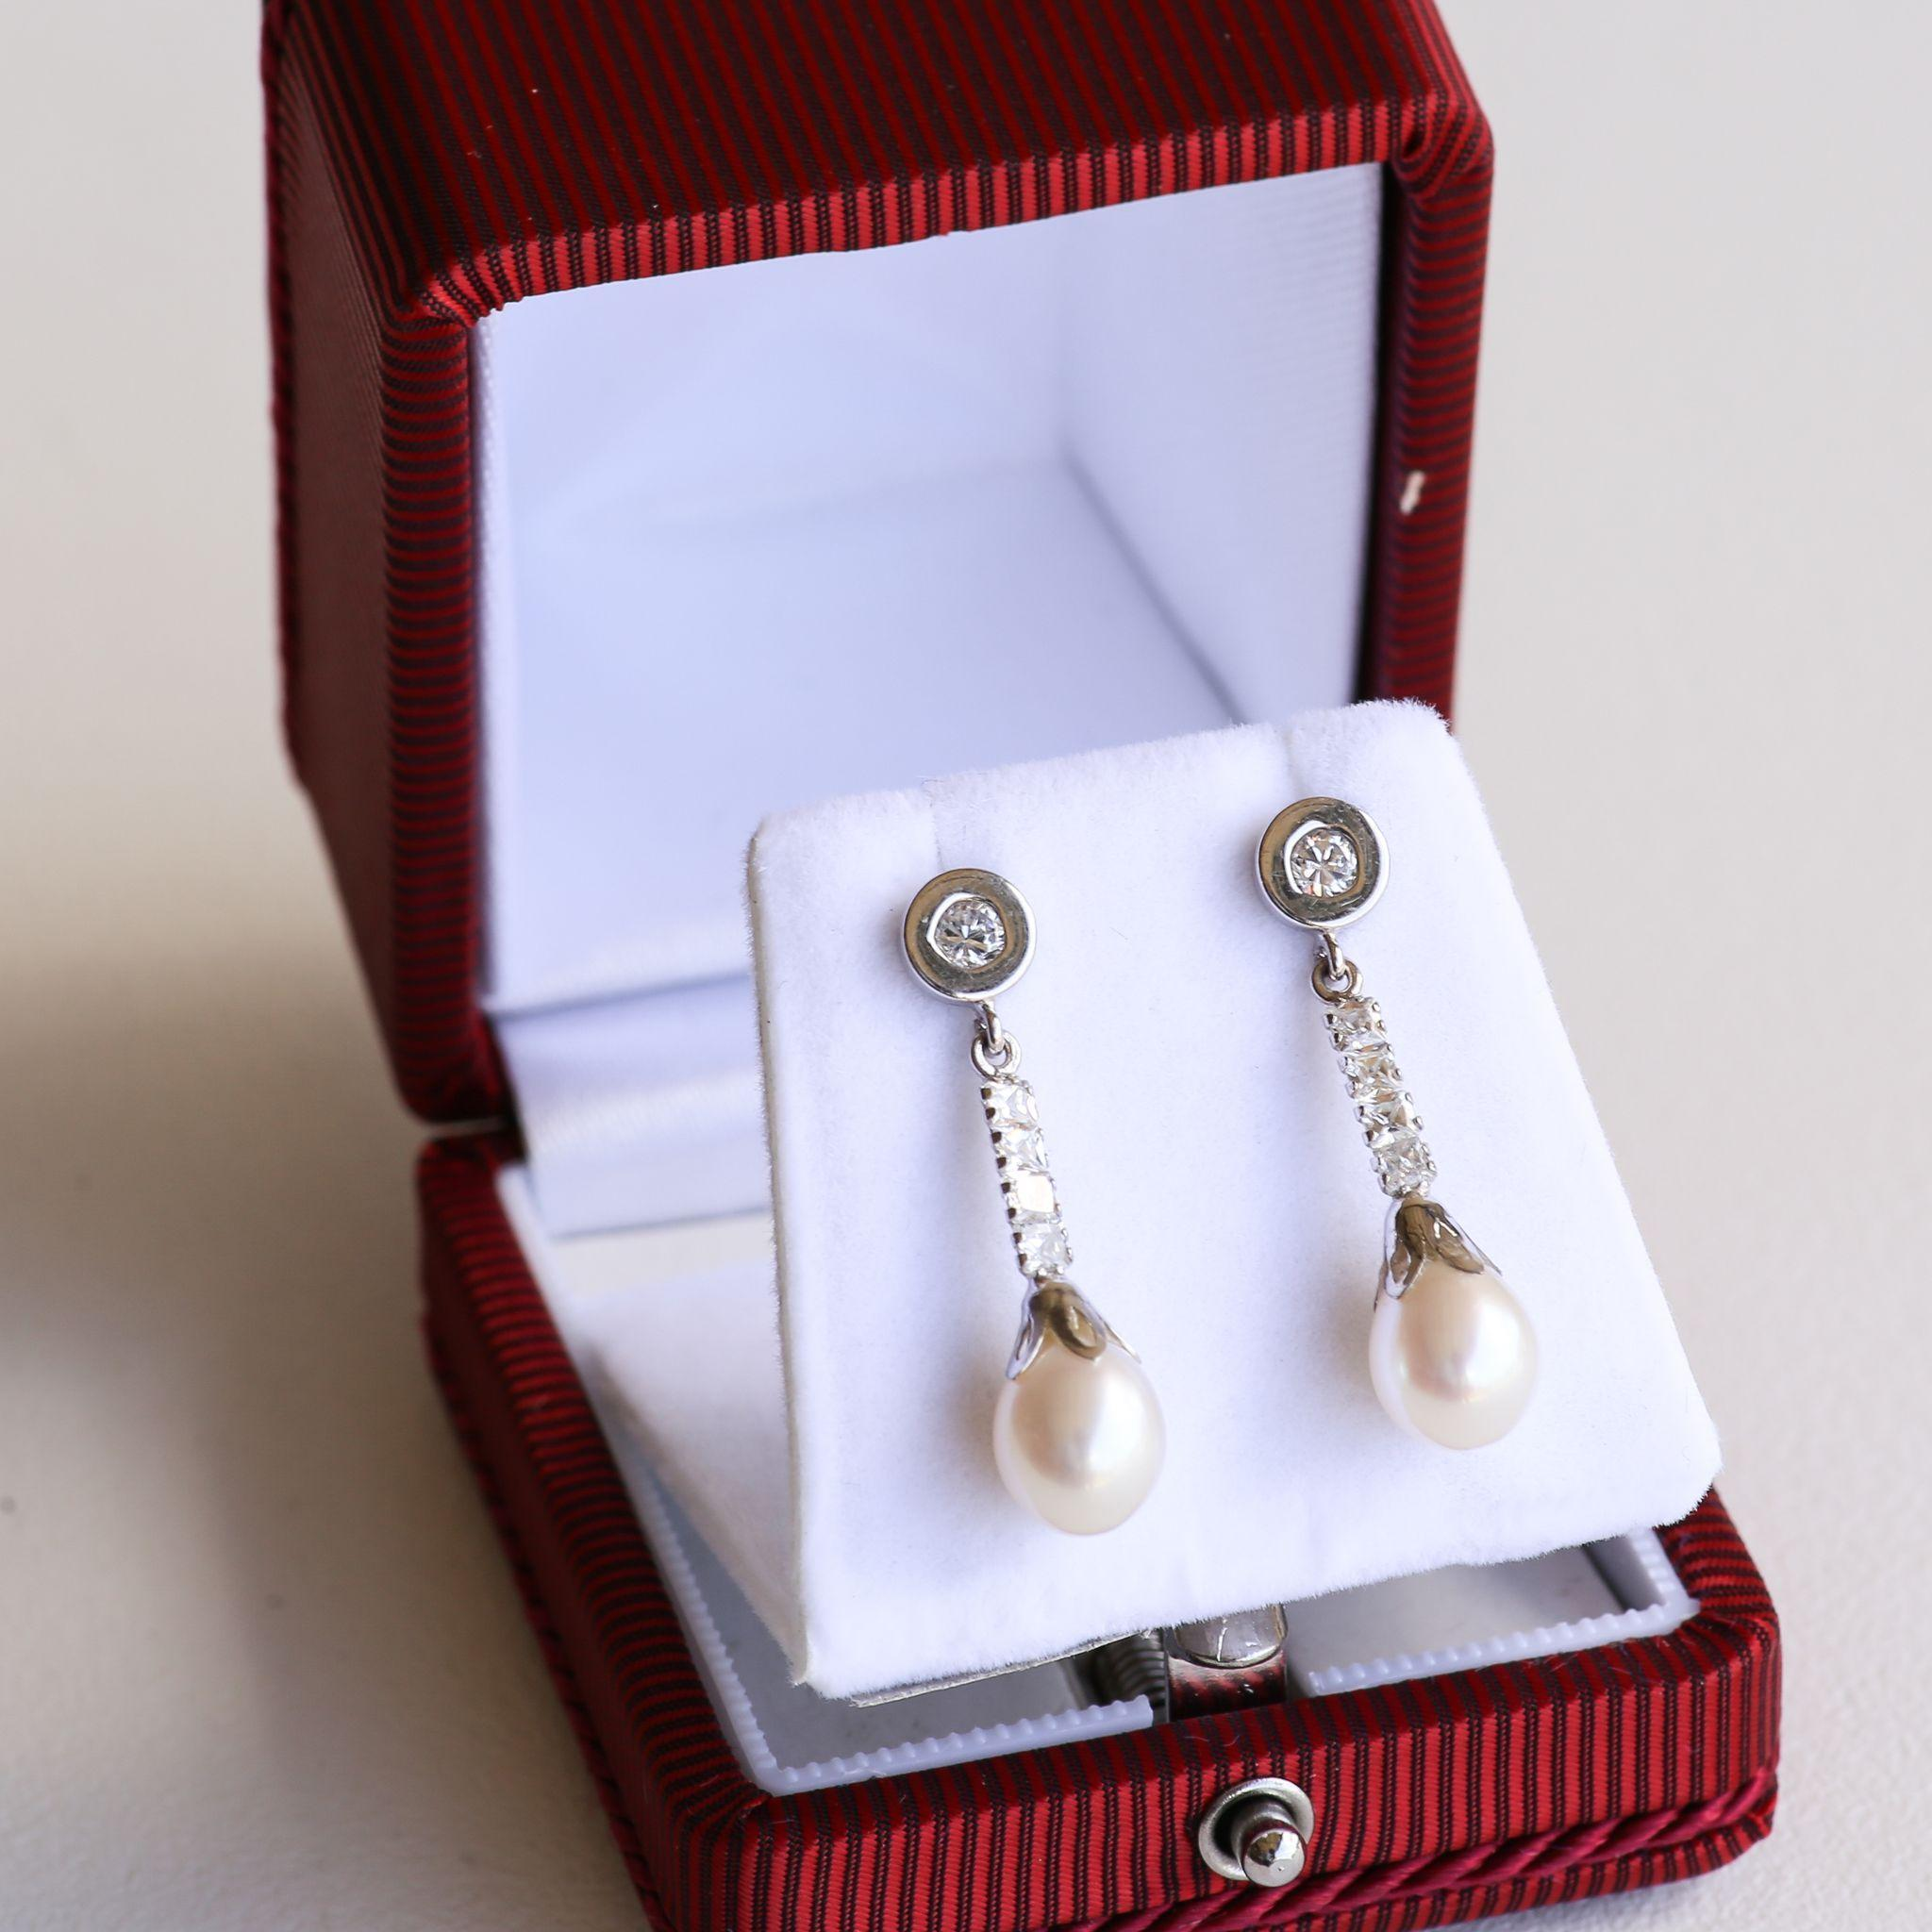 Magnificent Circa 1940's 14K Diamond & Cultured Pearl Drop Earrings